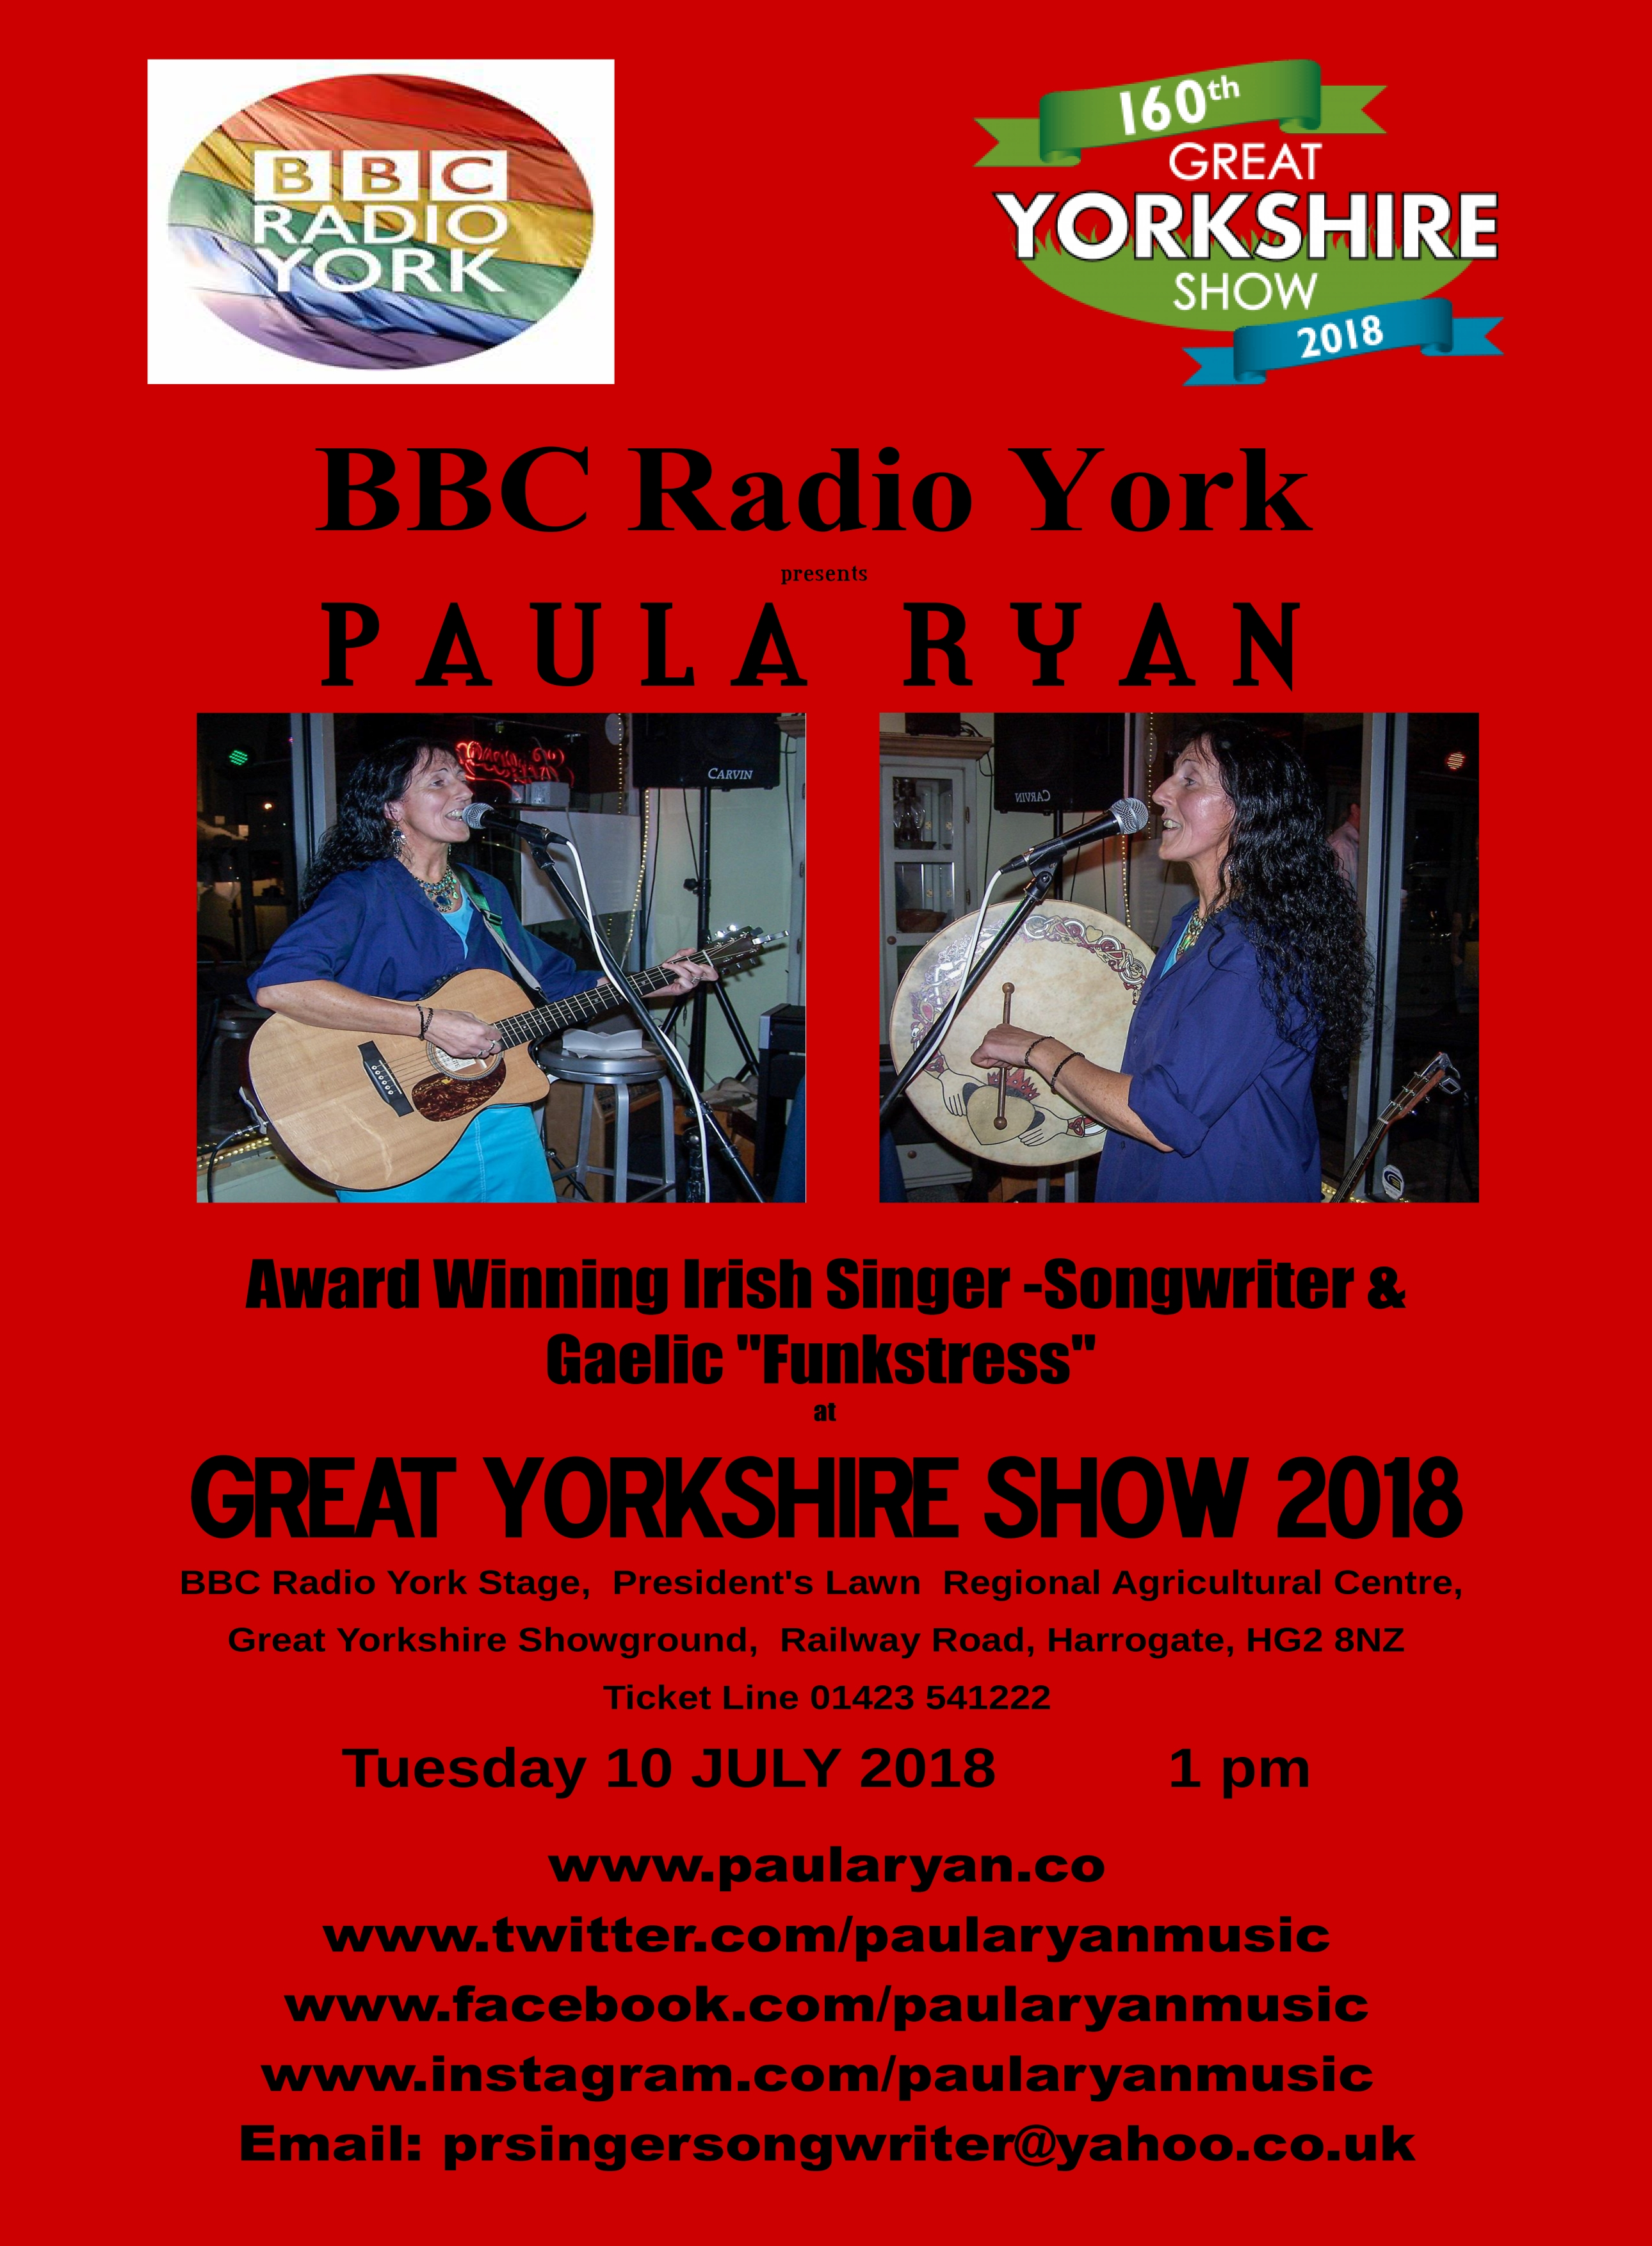 Great Yorkshire Show 2018 poster.jpg